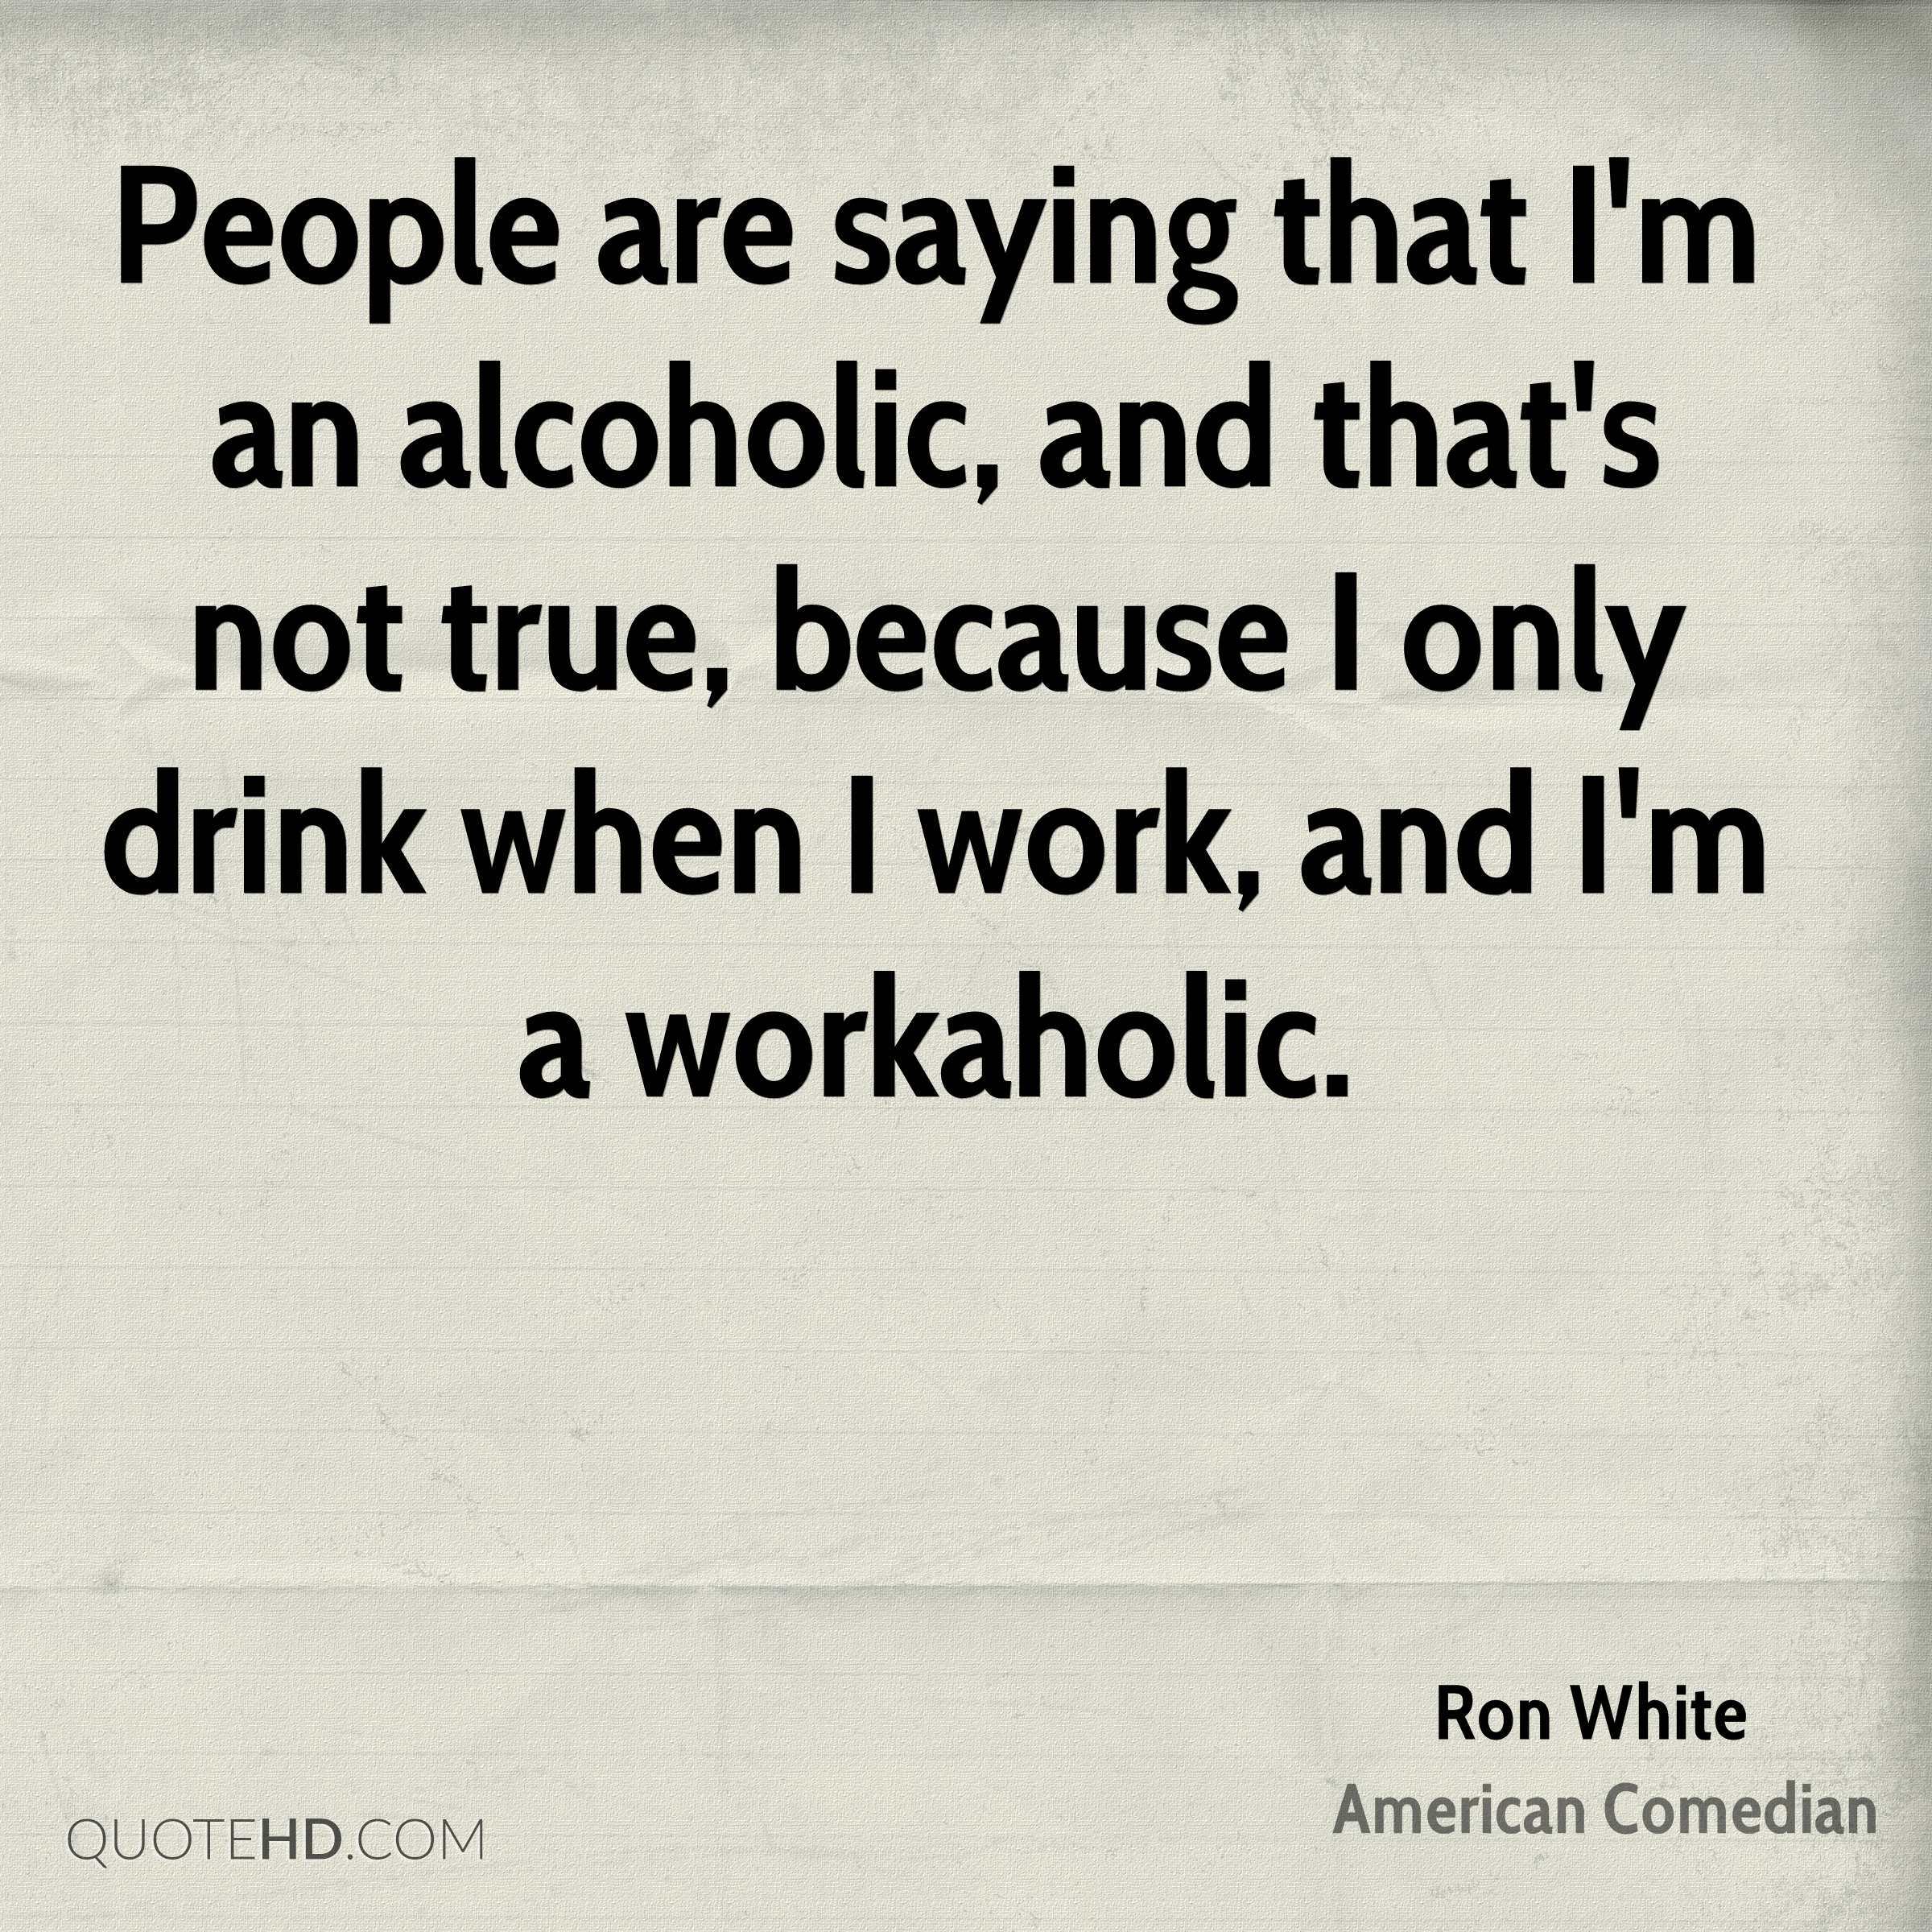 People are saying that I'm an alcoholic, and that's not true, because I only drink when I work, and I'm a workaholic.